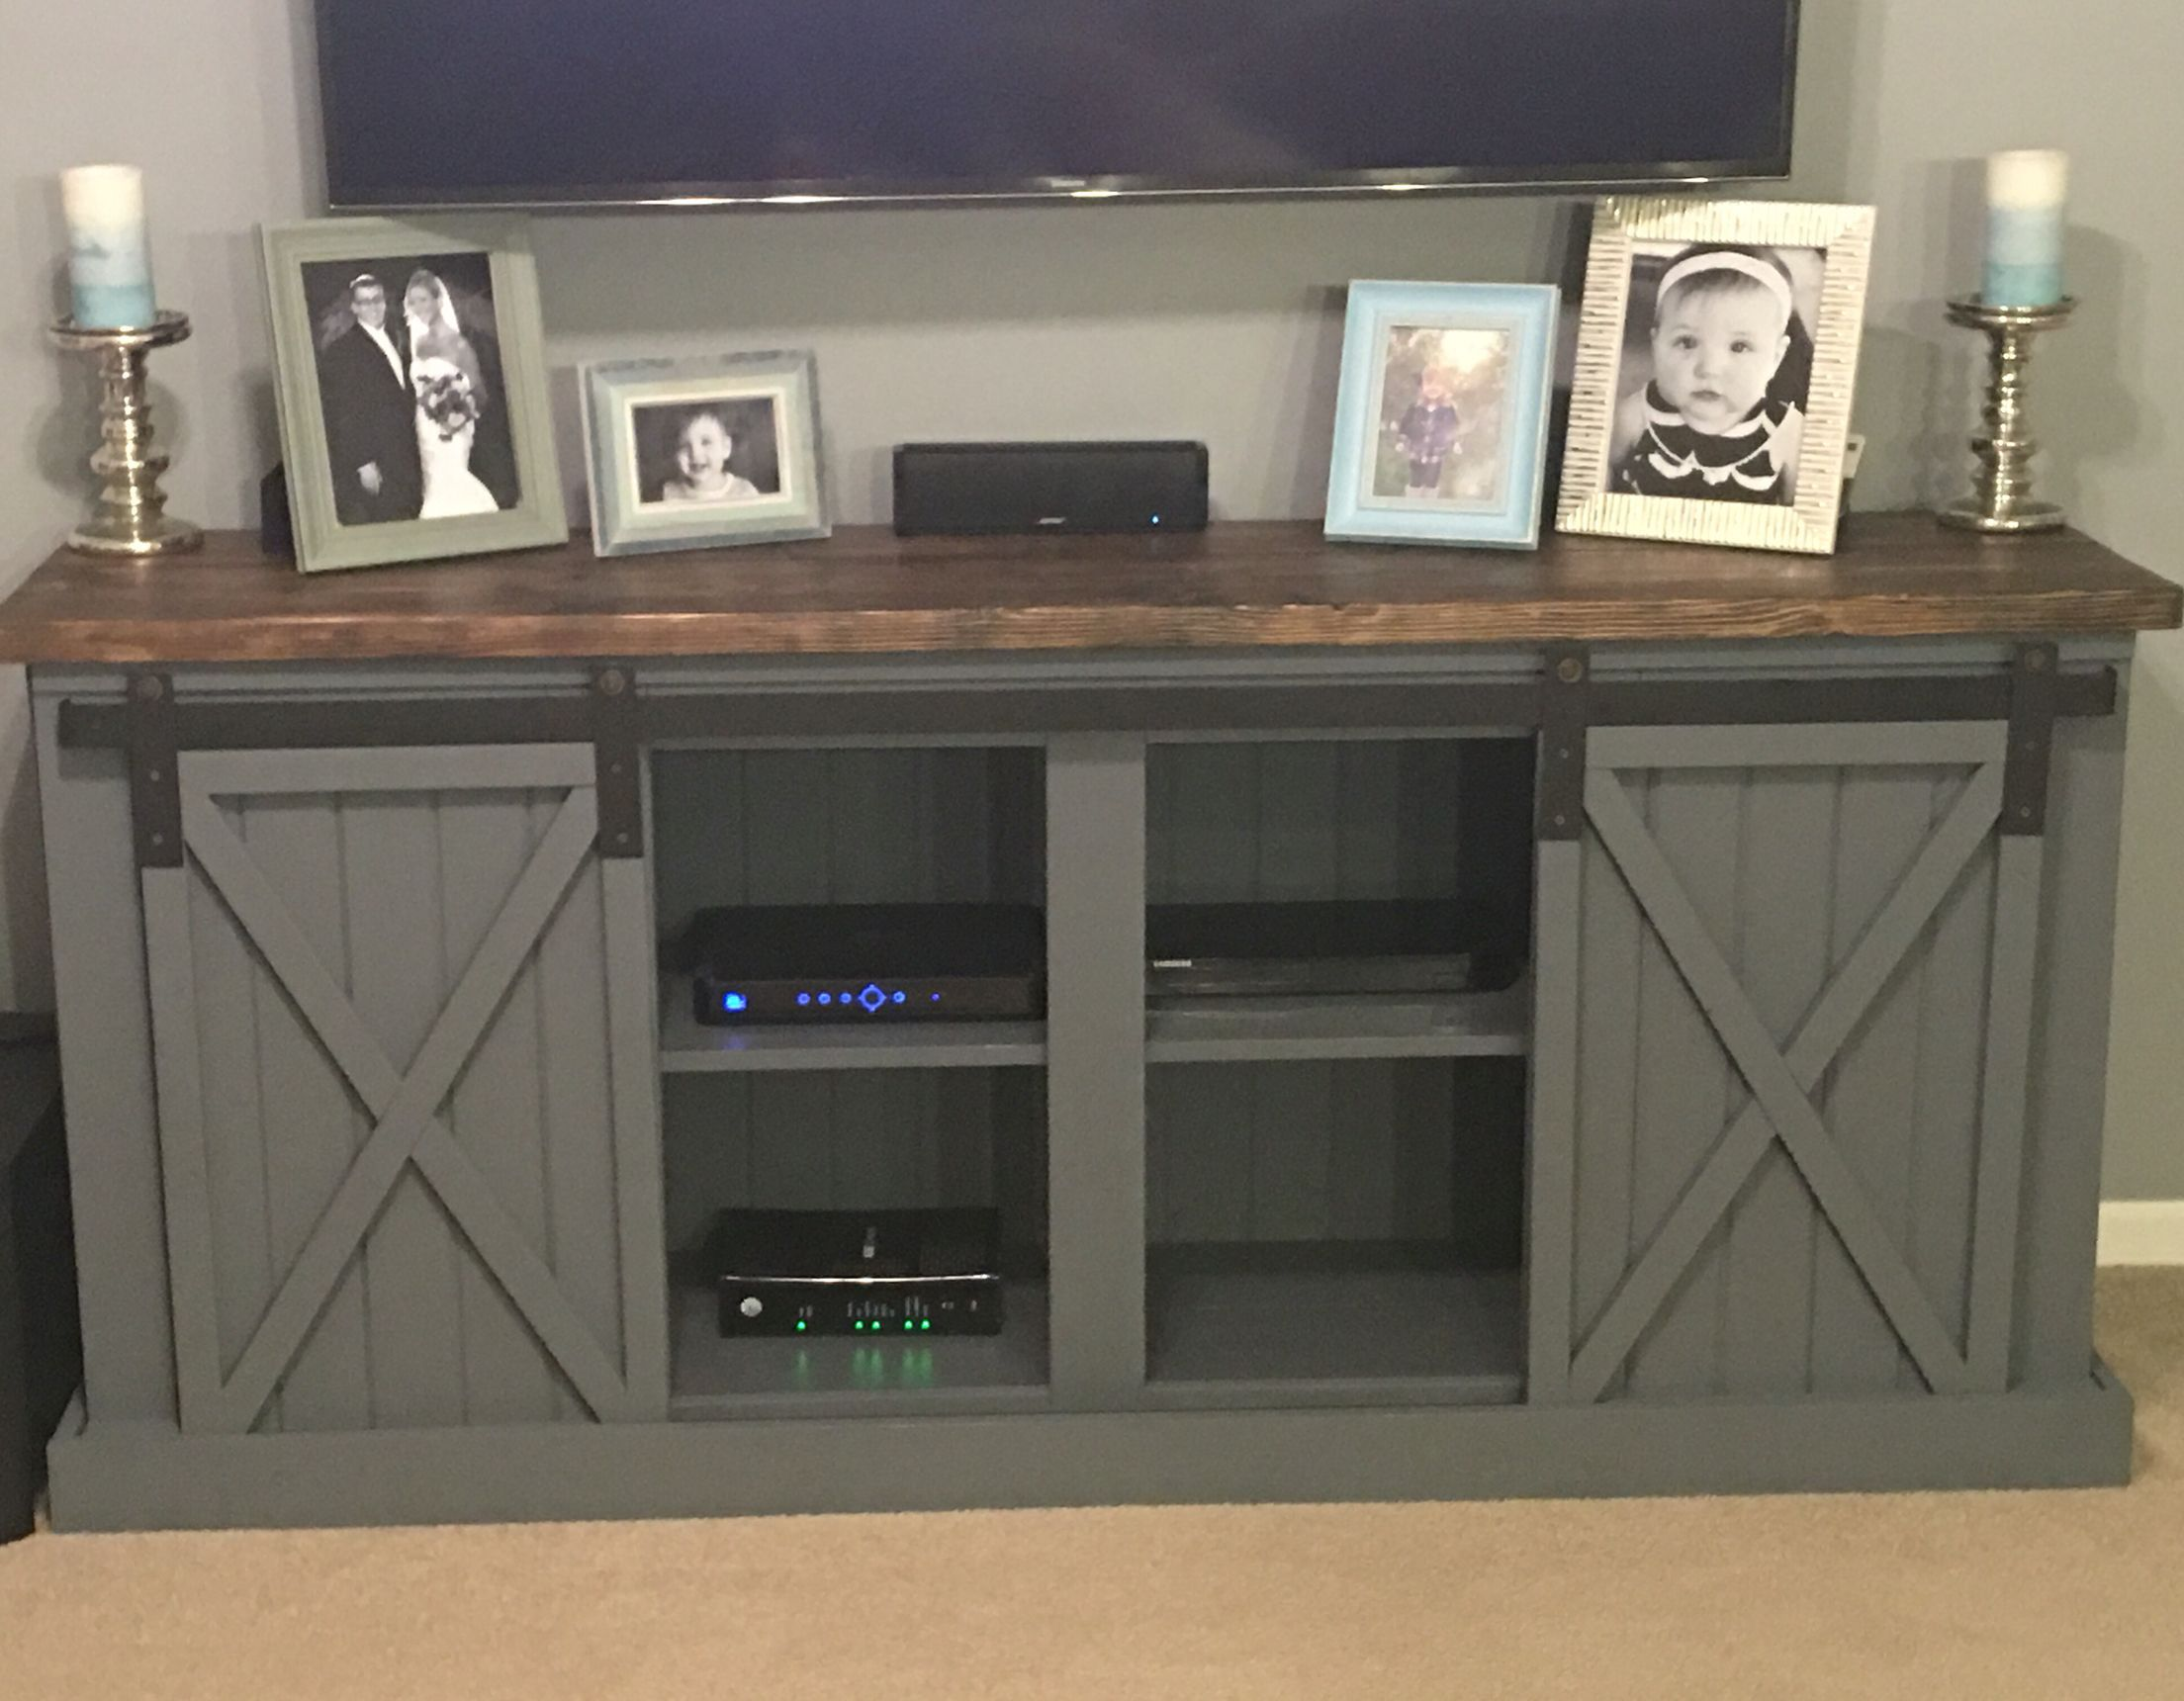 20 Best Diy Entertainment Center Design Ideas For Living Room In 2020 Built In Entertainment Center Farmhouse Entertainment Center Pallet Entertainment Centers